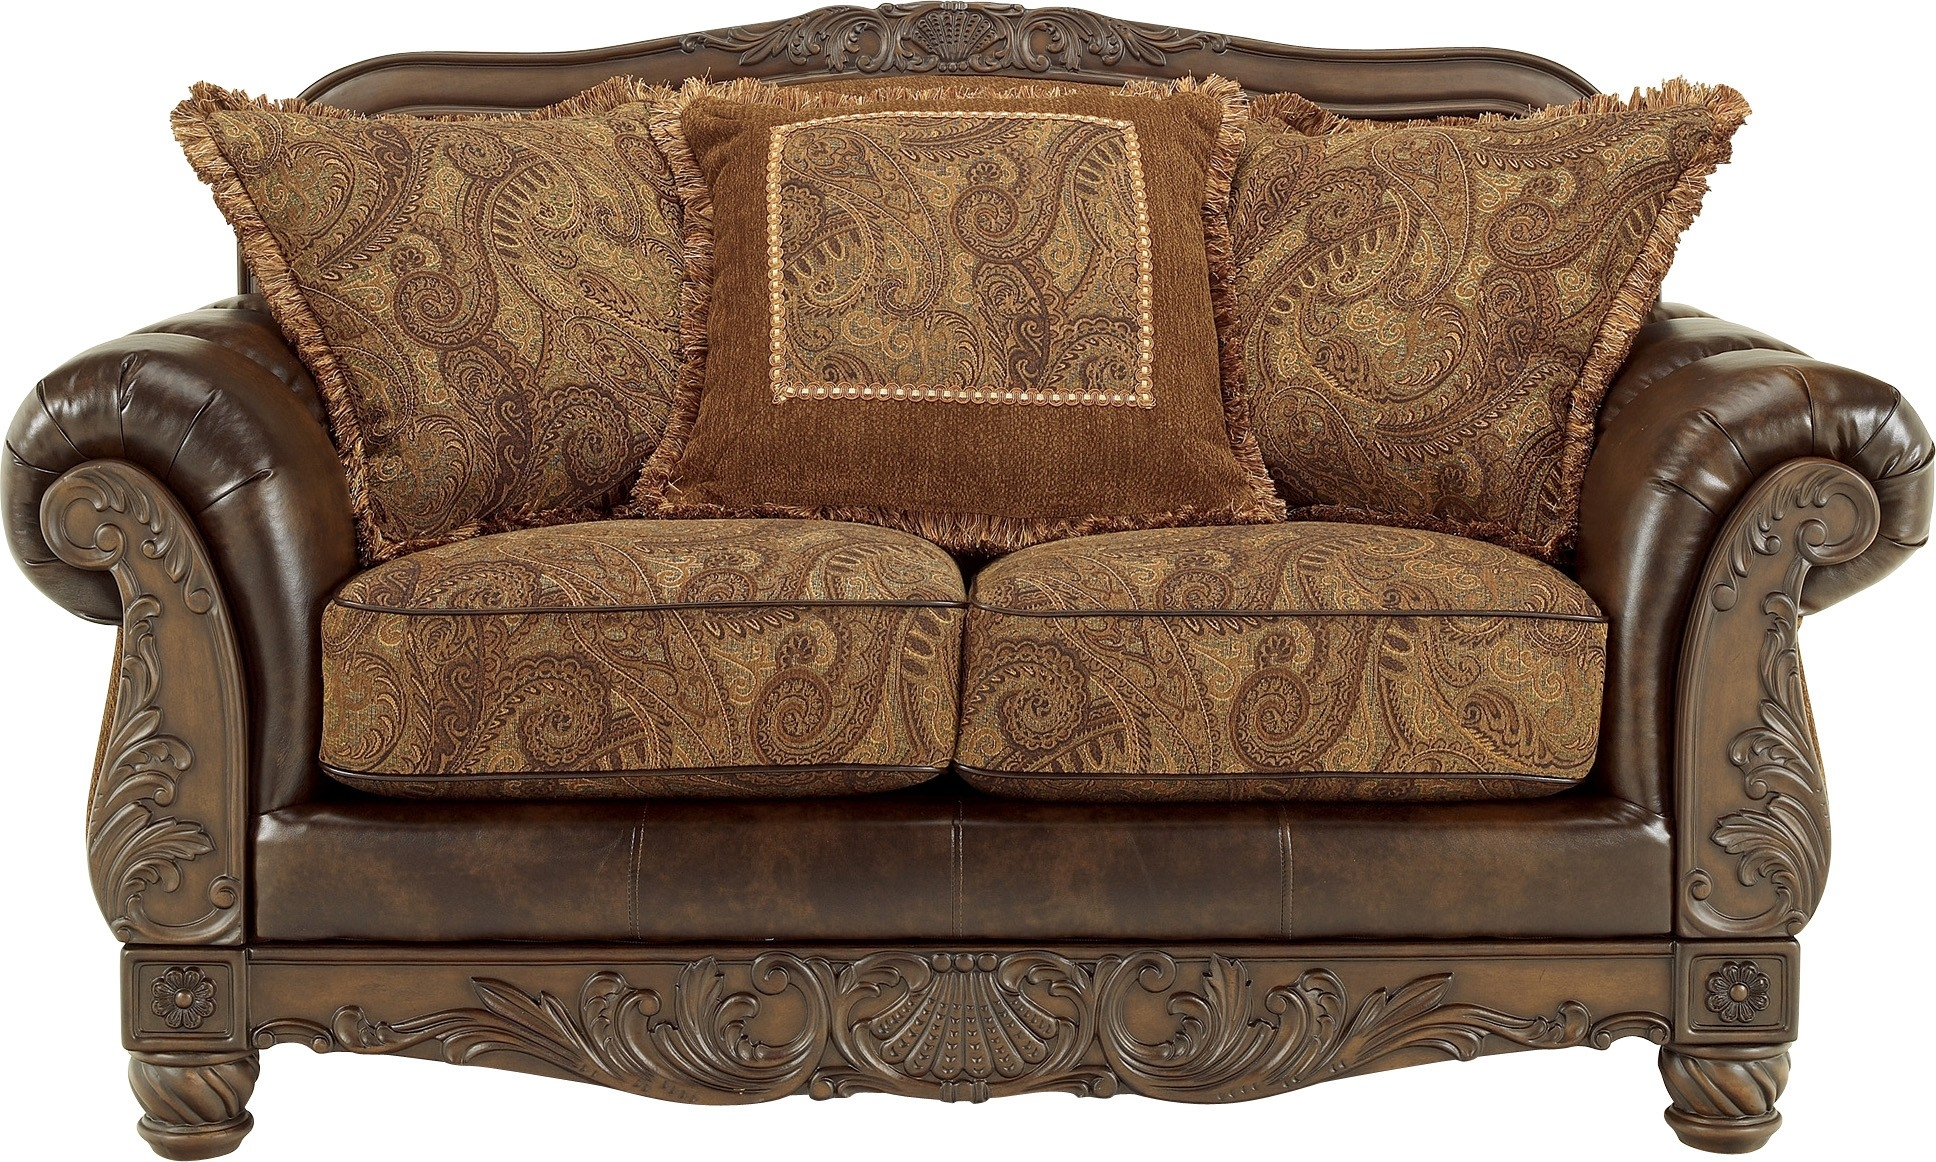 Fresco Durablend Antique Loveseat Ashley Furniture Pertaining To Antique Sofa Chairs (Image 11 of 15)